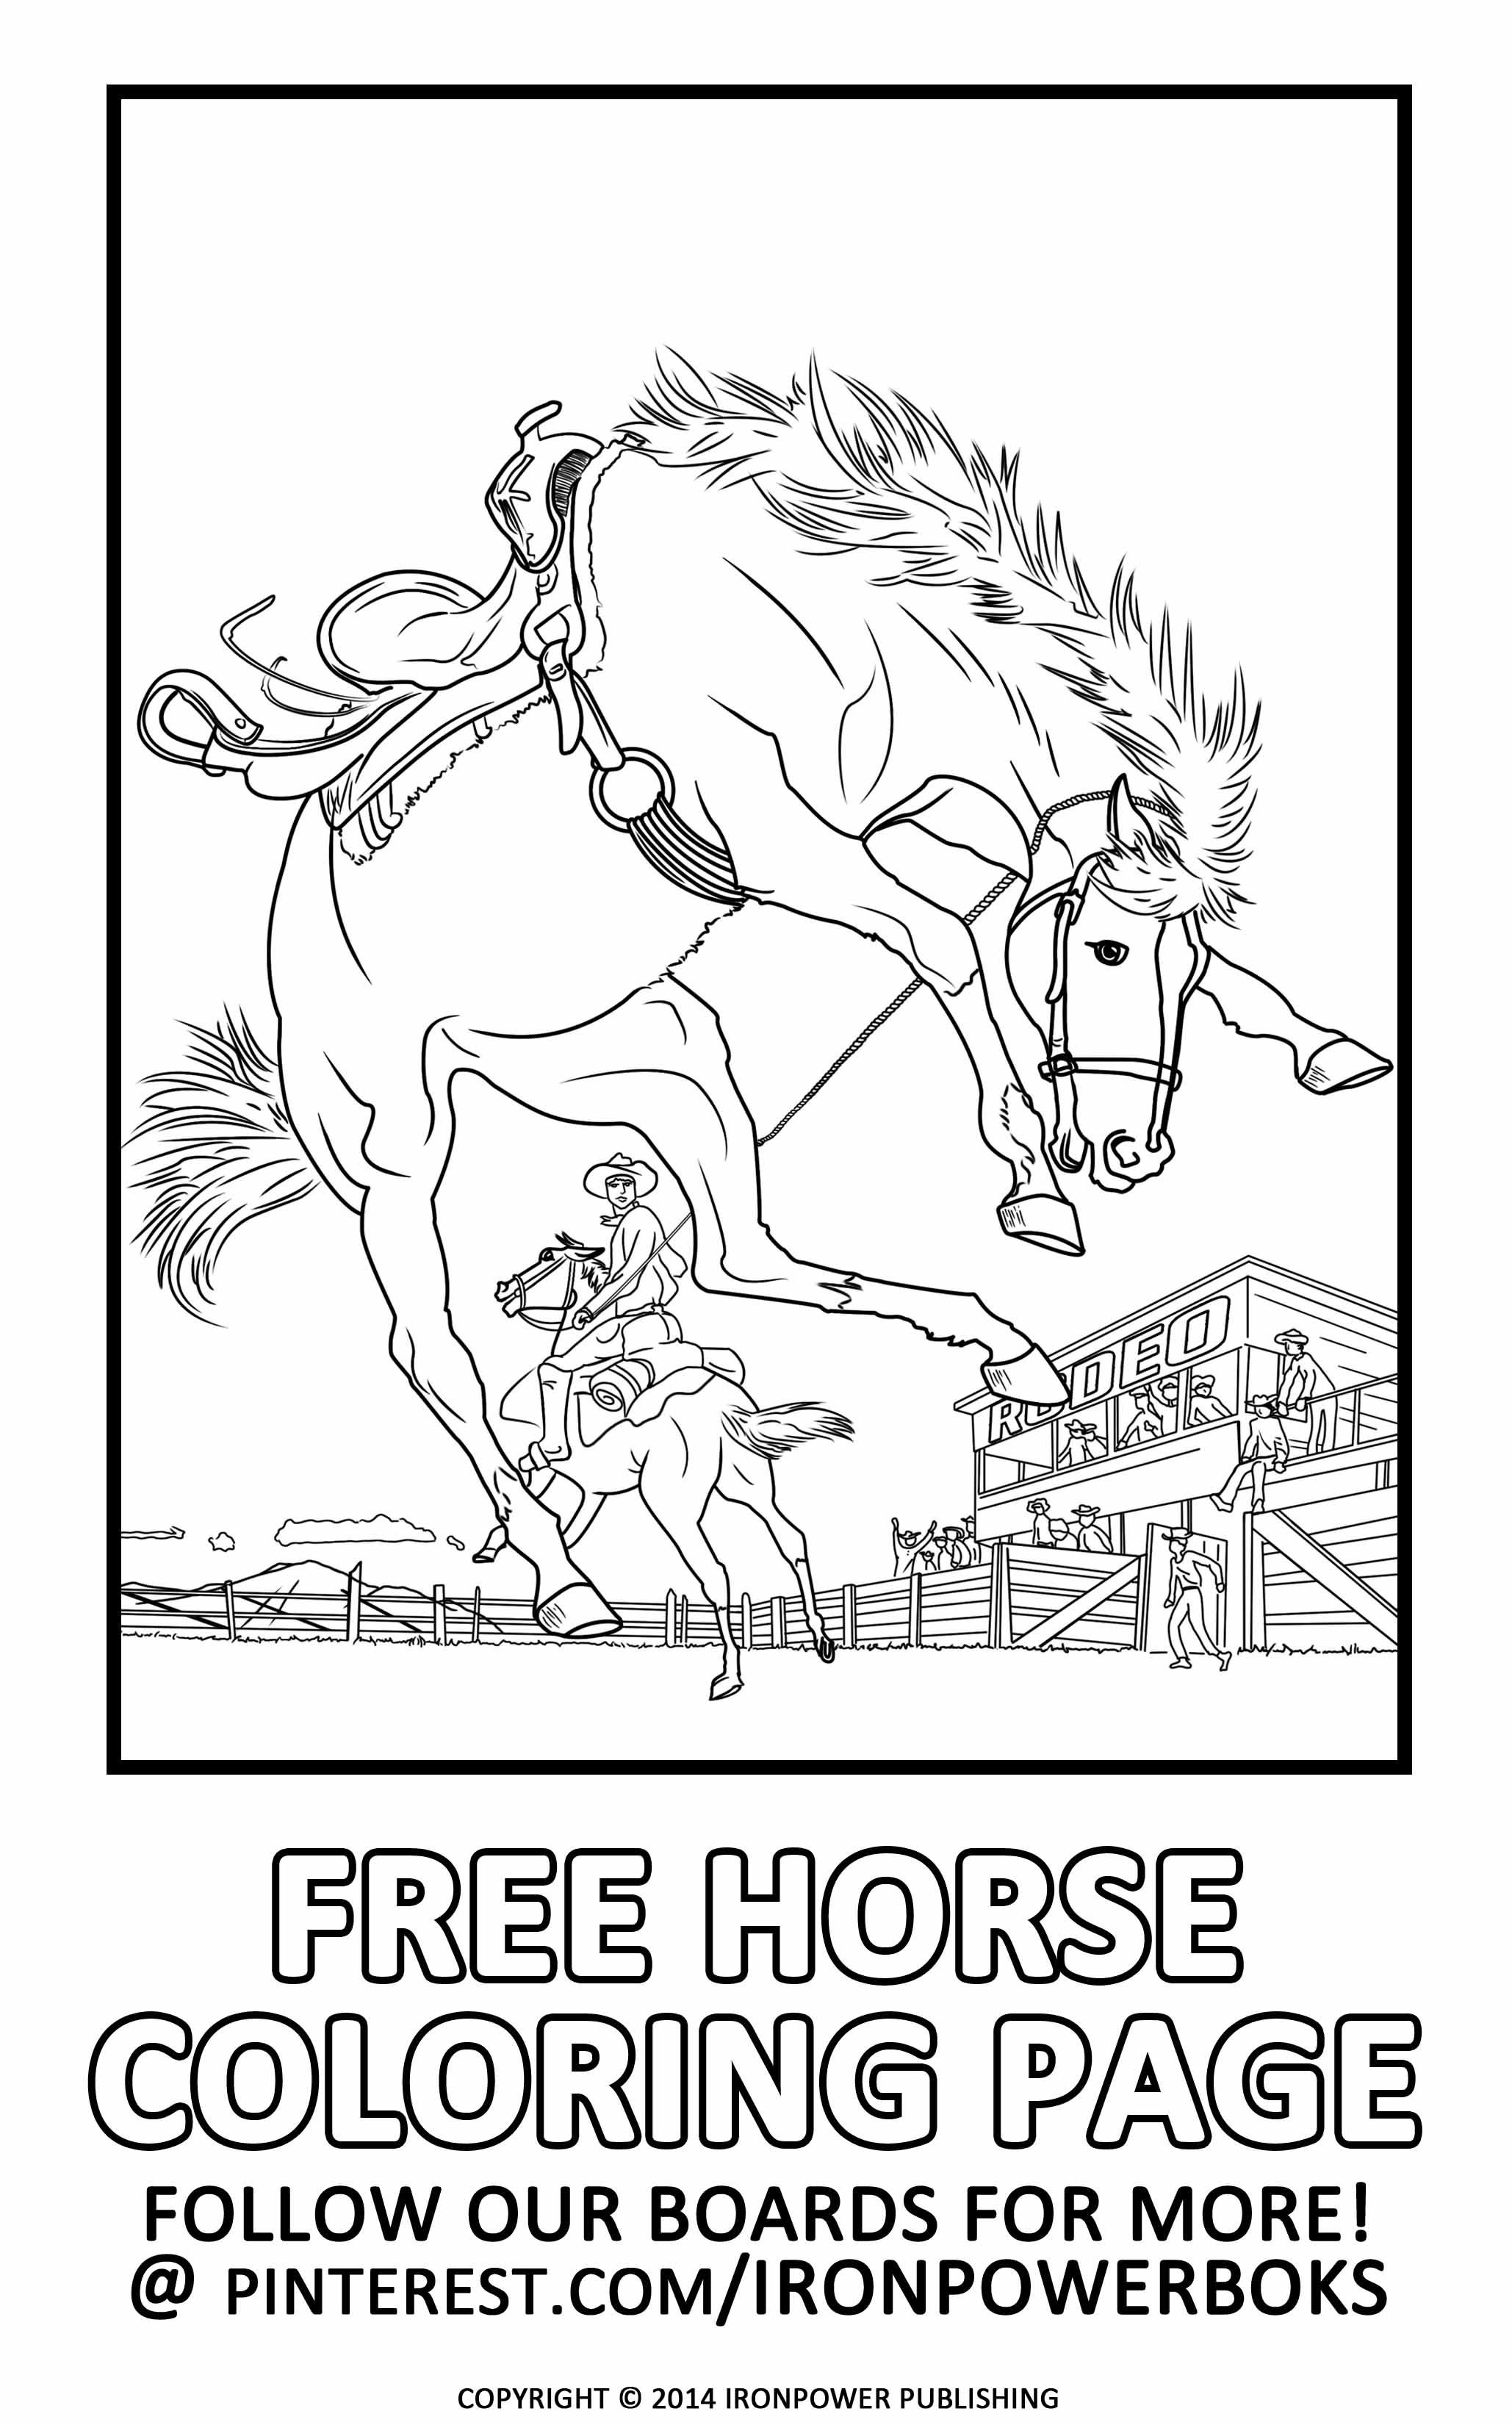 Free horse coloring pages for kids and adults a very detailed